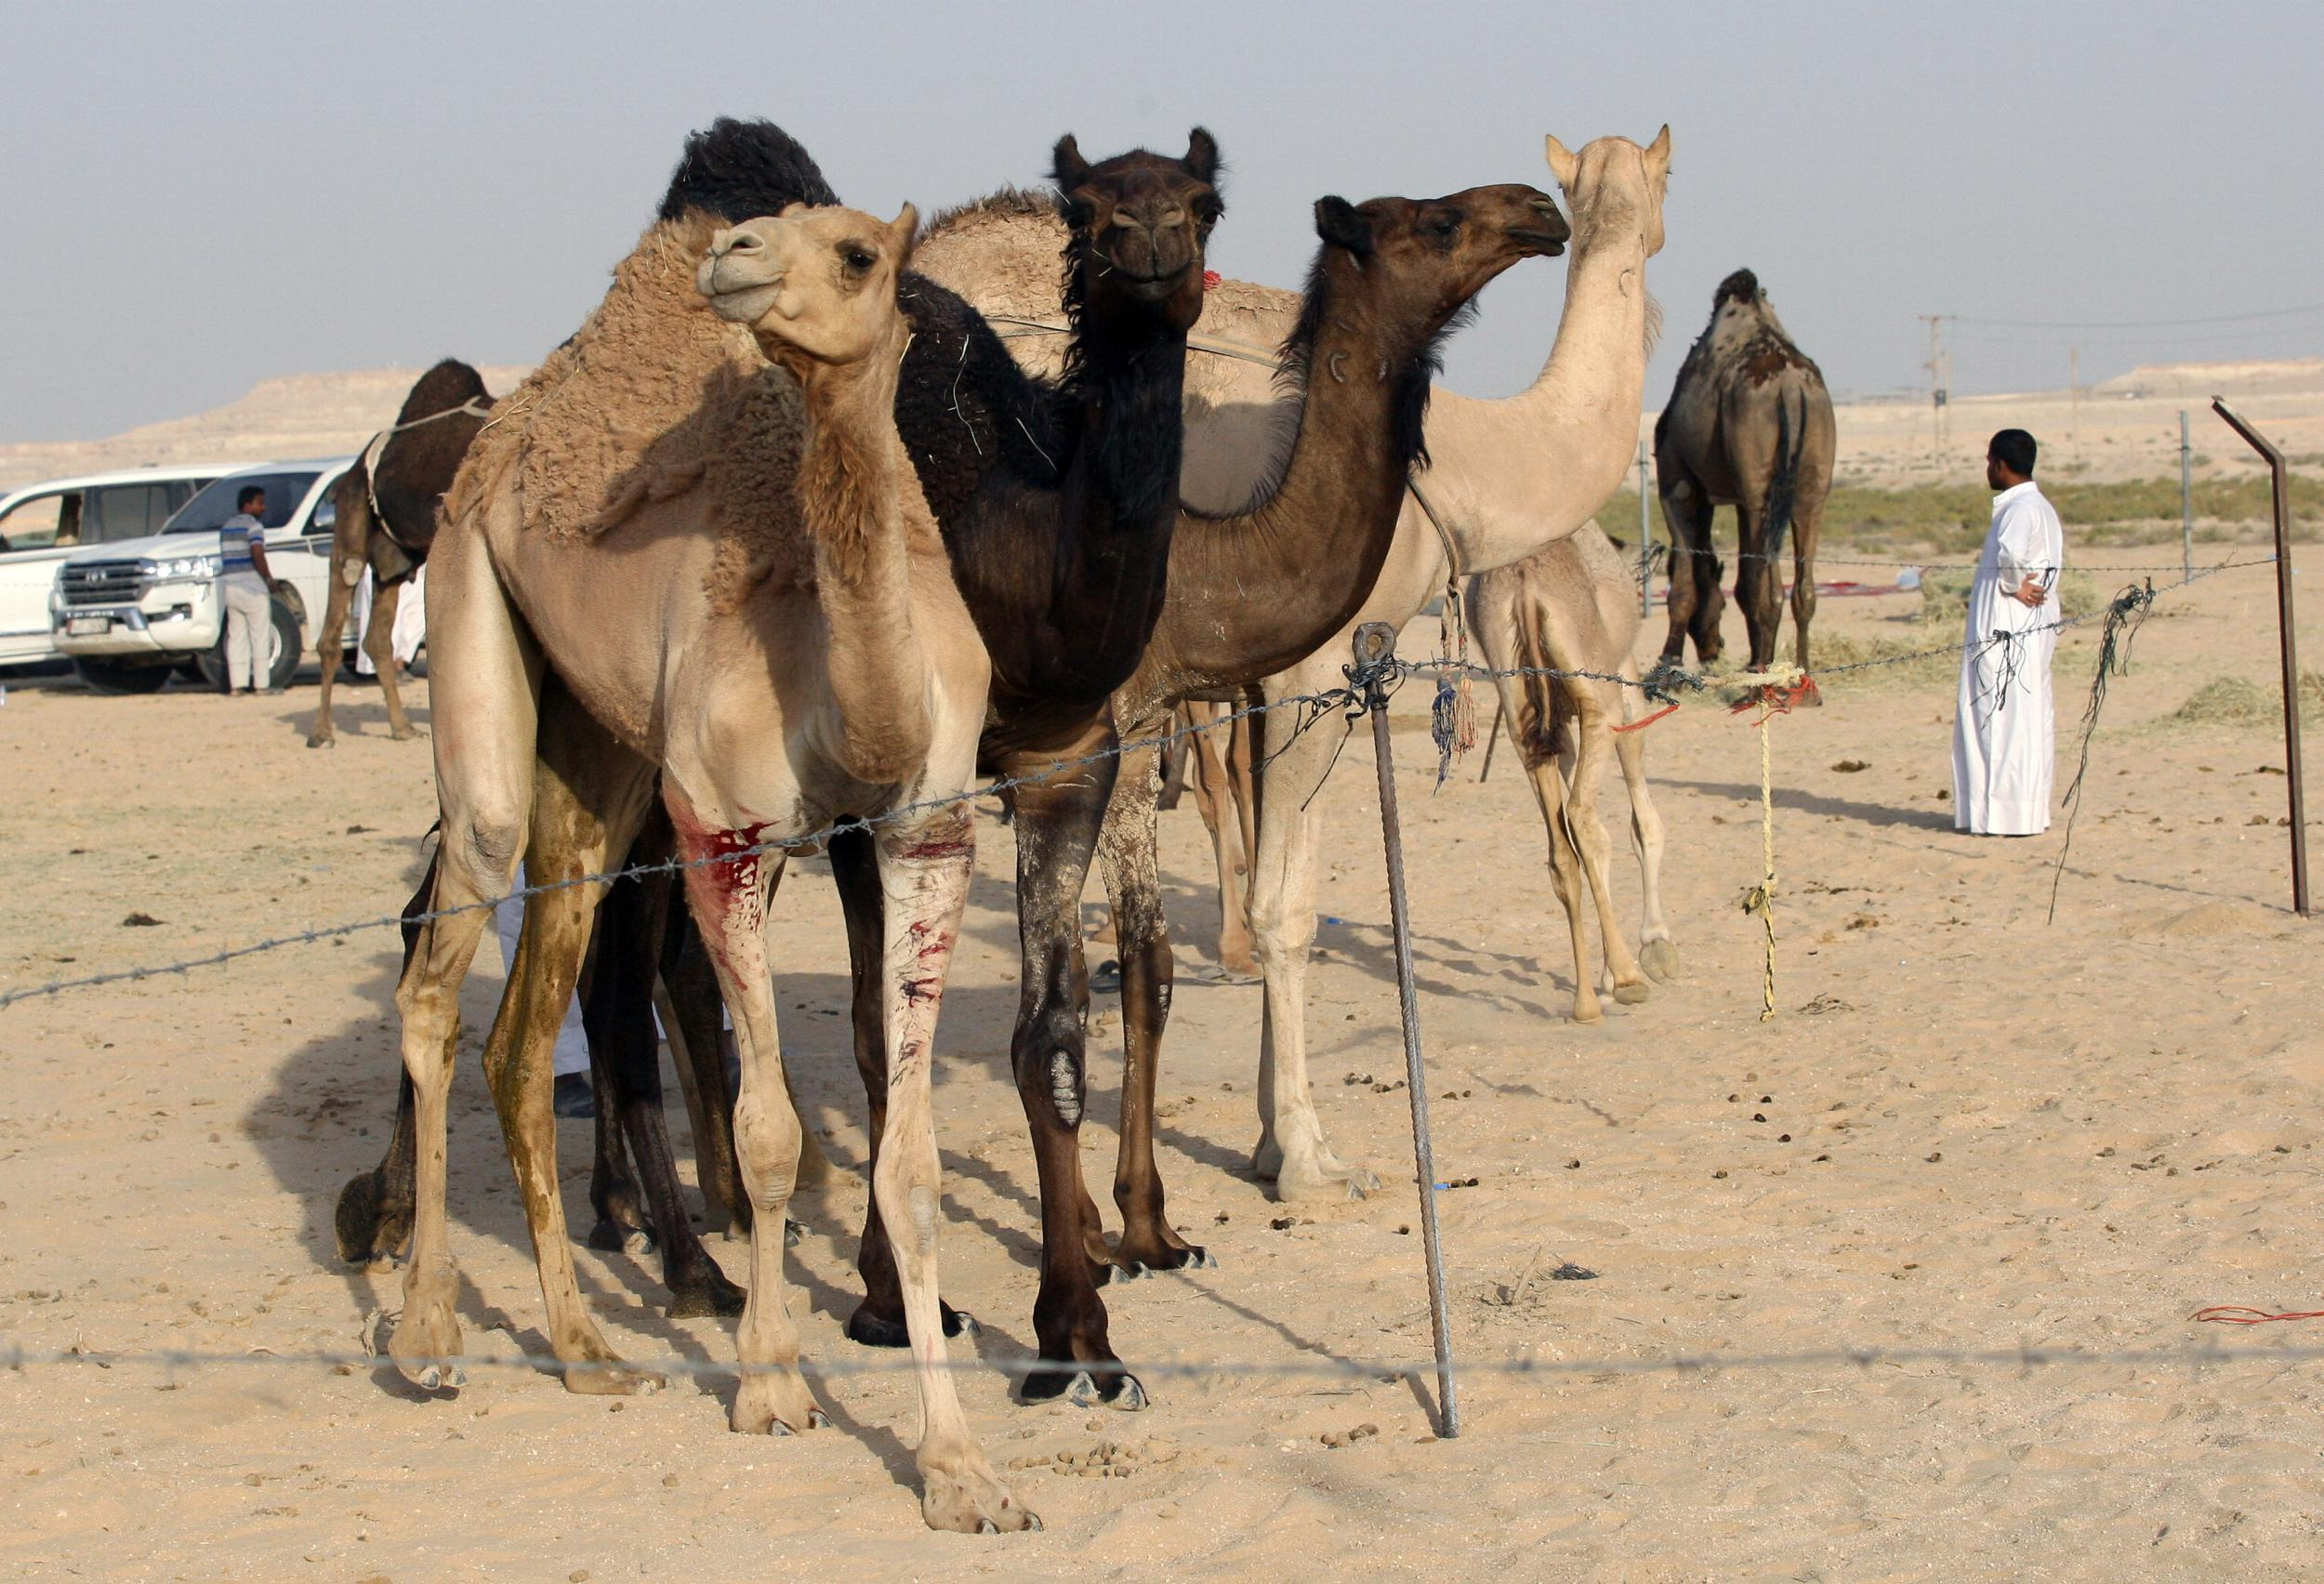 camels - latest news, breaking stories and comment - The Independent